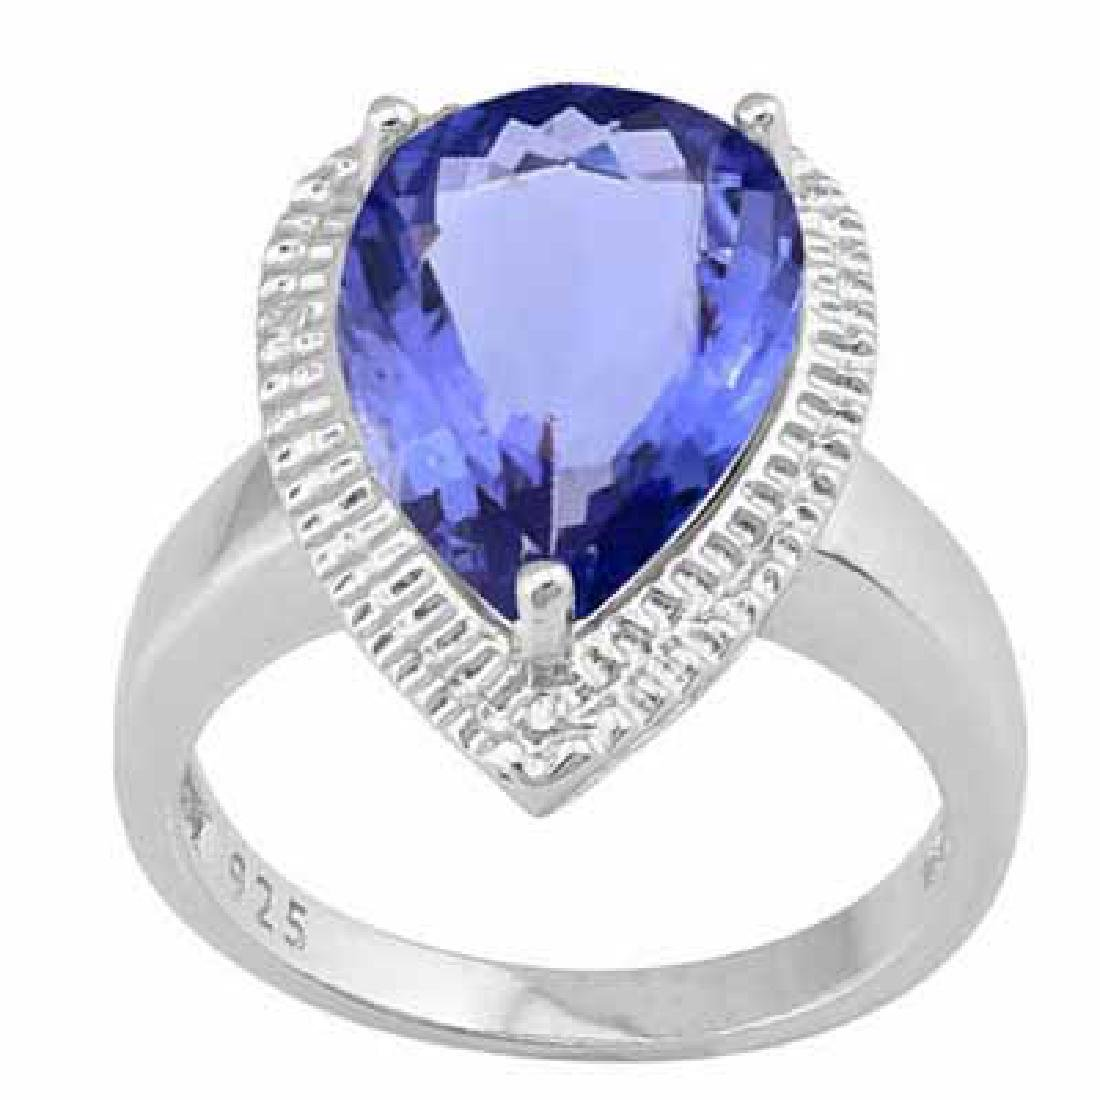 9.794 CARAT TW (3 PCS) LAB TANZANITE & GENUINE DIAMOND